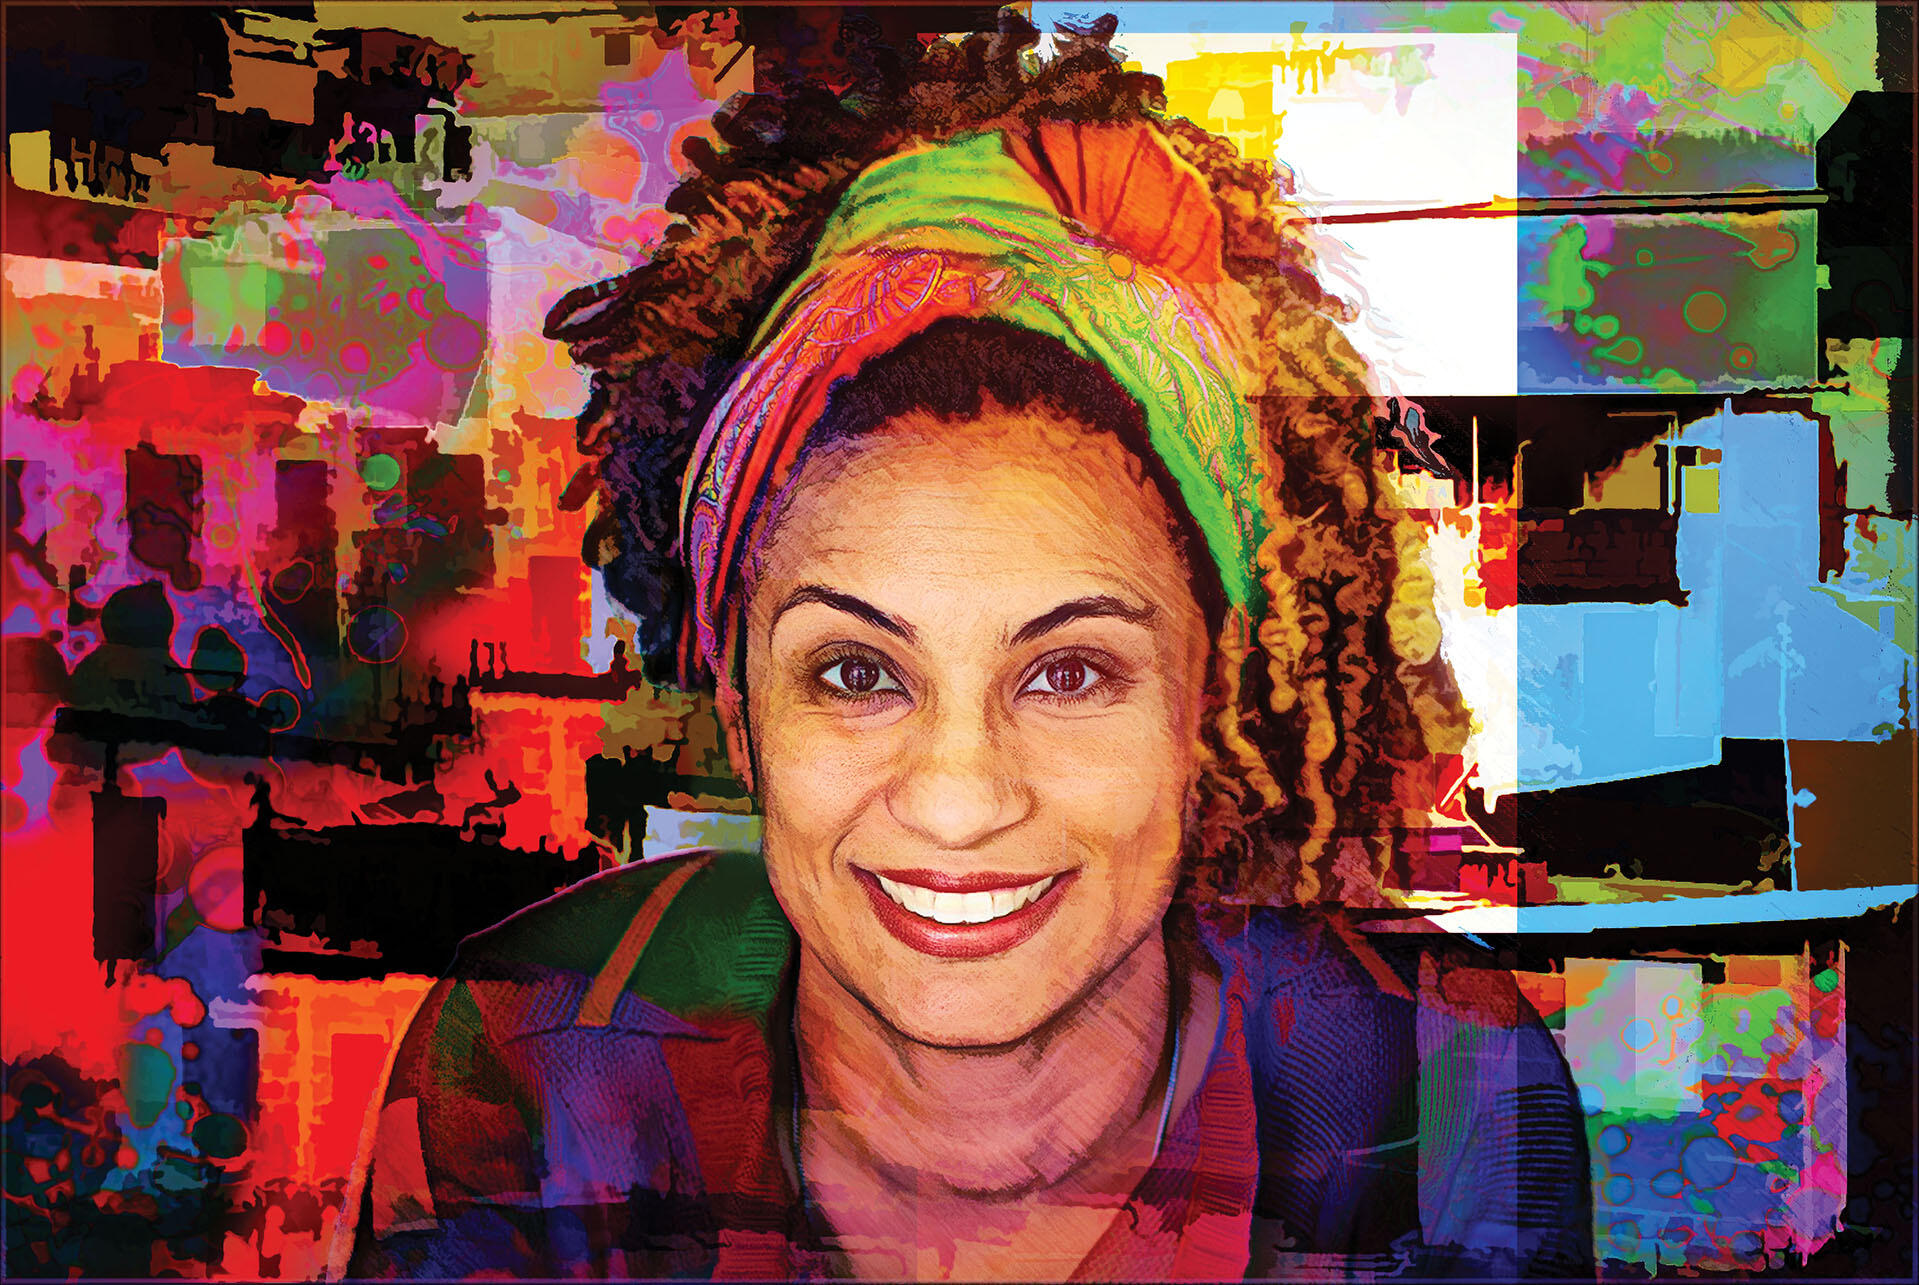 A tribute to slain activist and political leader Marielle Franco. (Art and image by Daniel Arrhakis.)